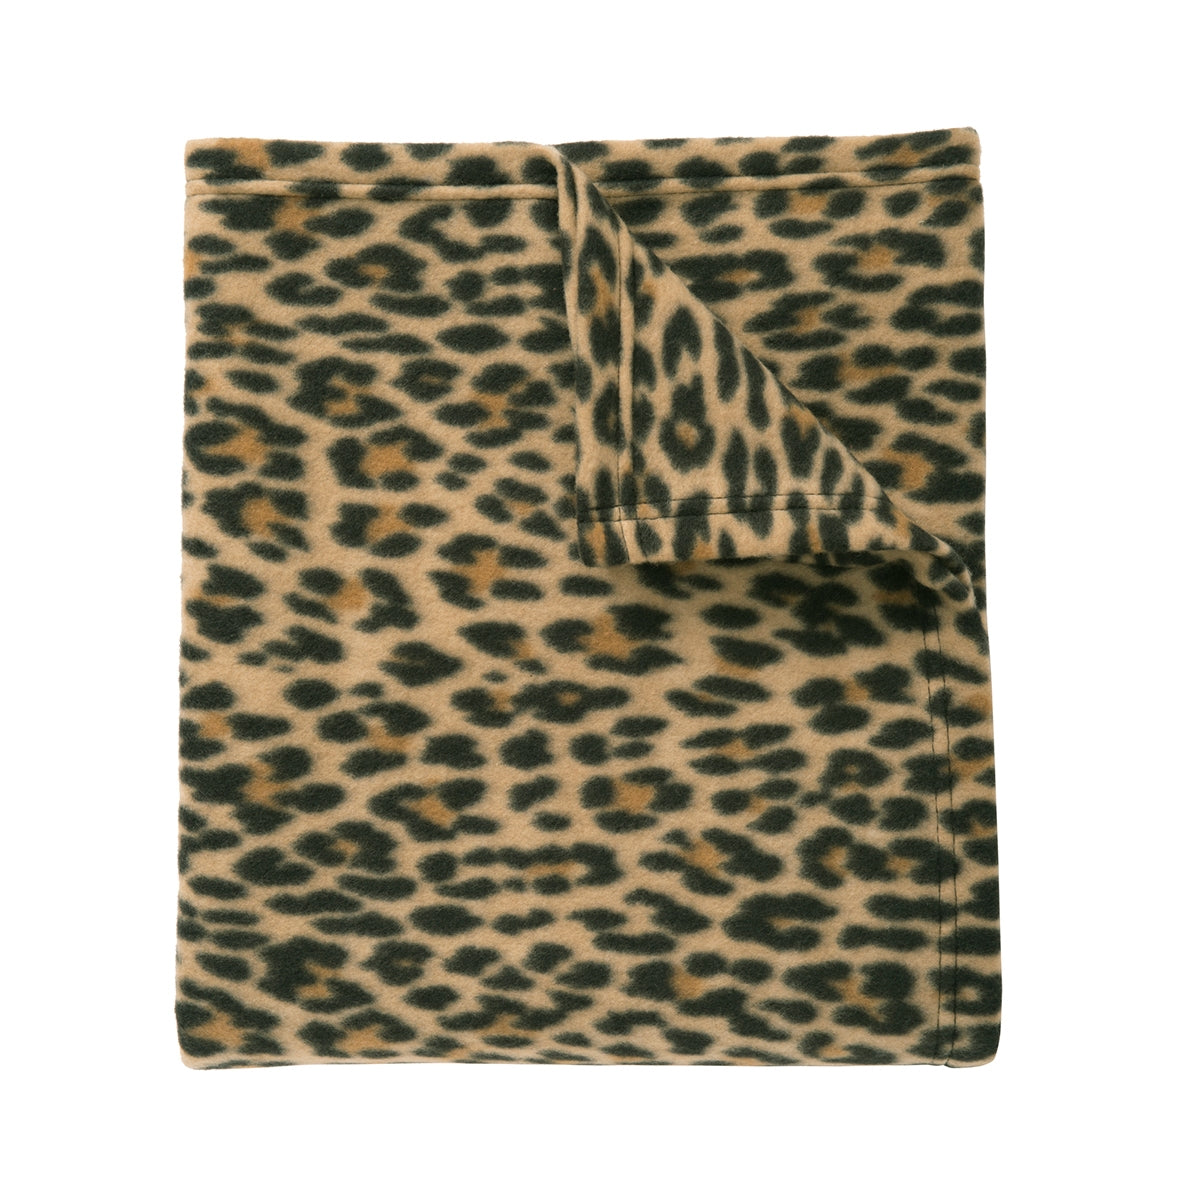 Core Printed Fleece Blanket Leopard Print